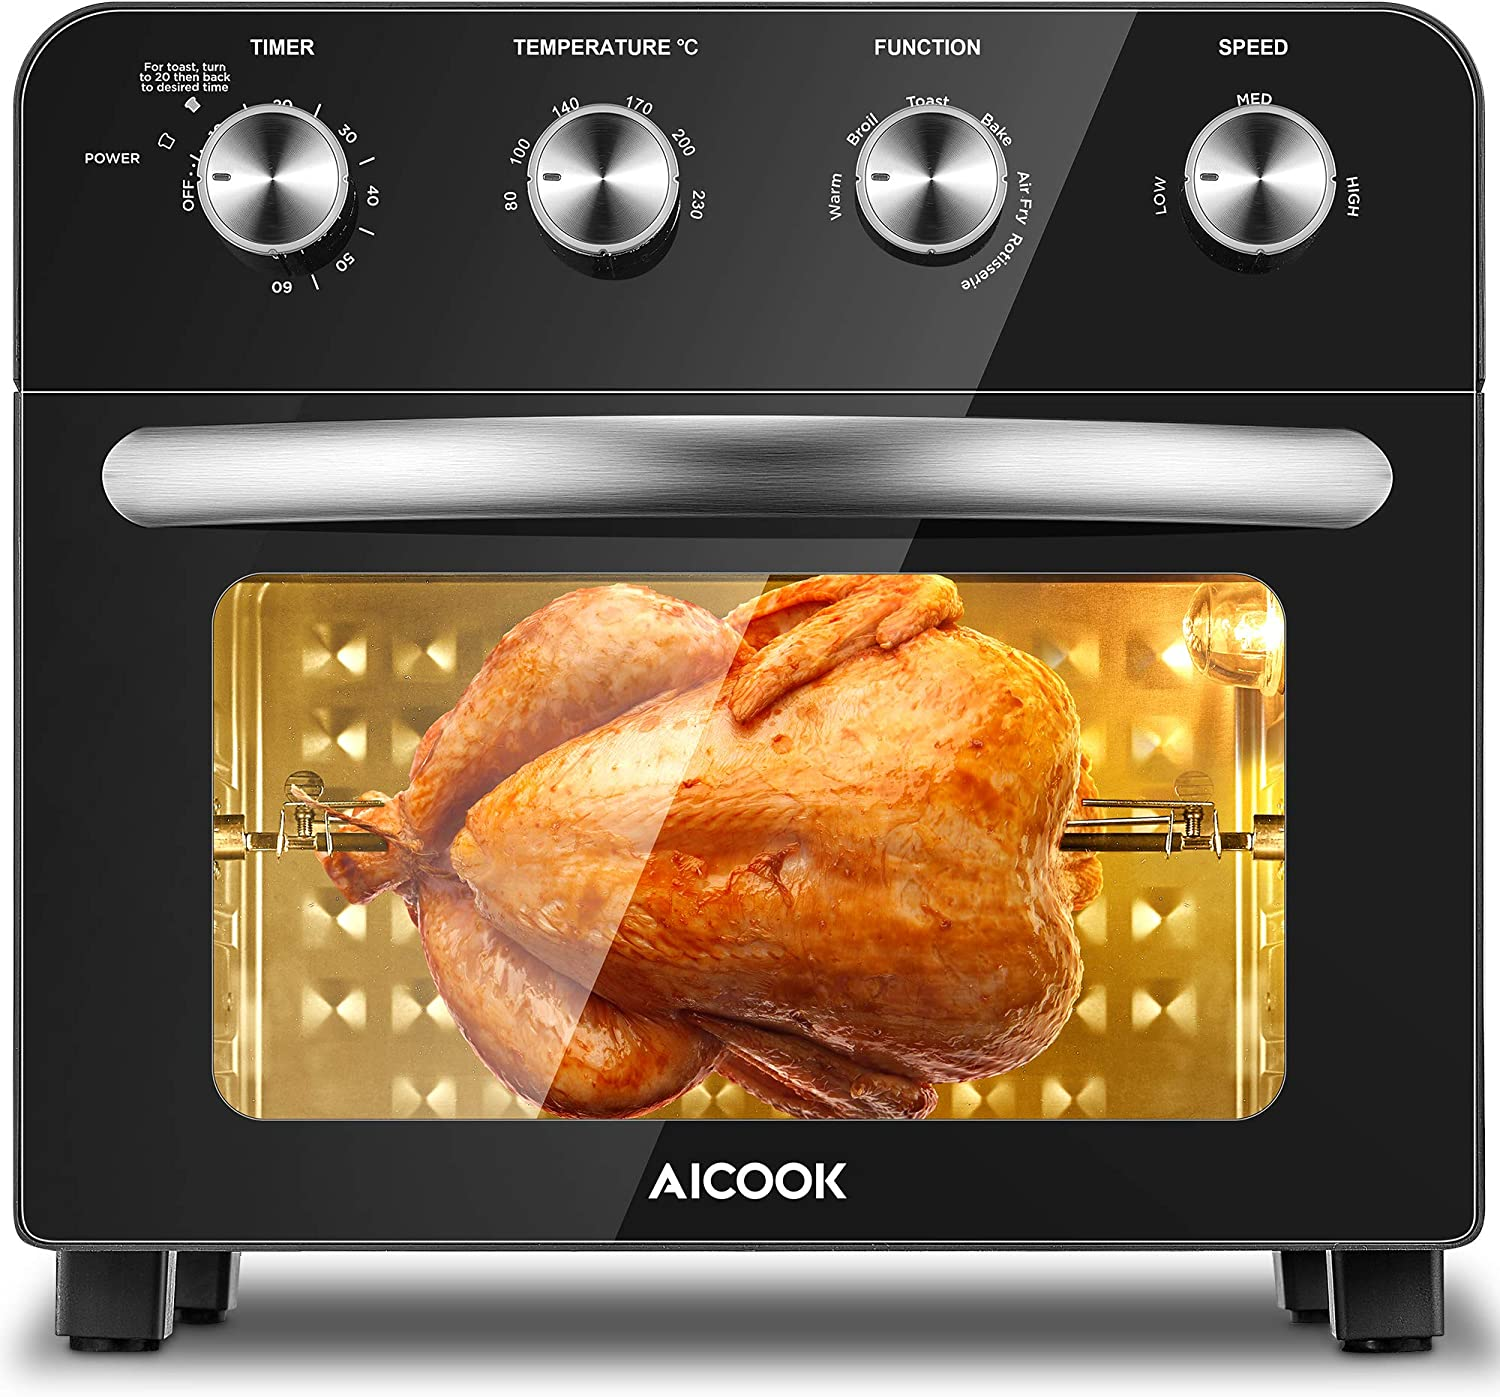 Aicook Hot Air Fryer 23 L Air Fryer 1700 W Airfryer Mini Oven Without Oil With Precise Temperature Control Ideal For Pizza Chips Steak And Toast 75 Recipes Black Küche Haushalt